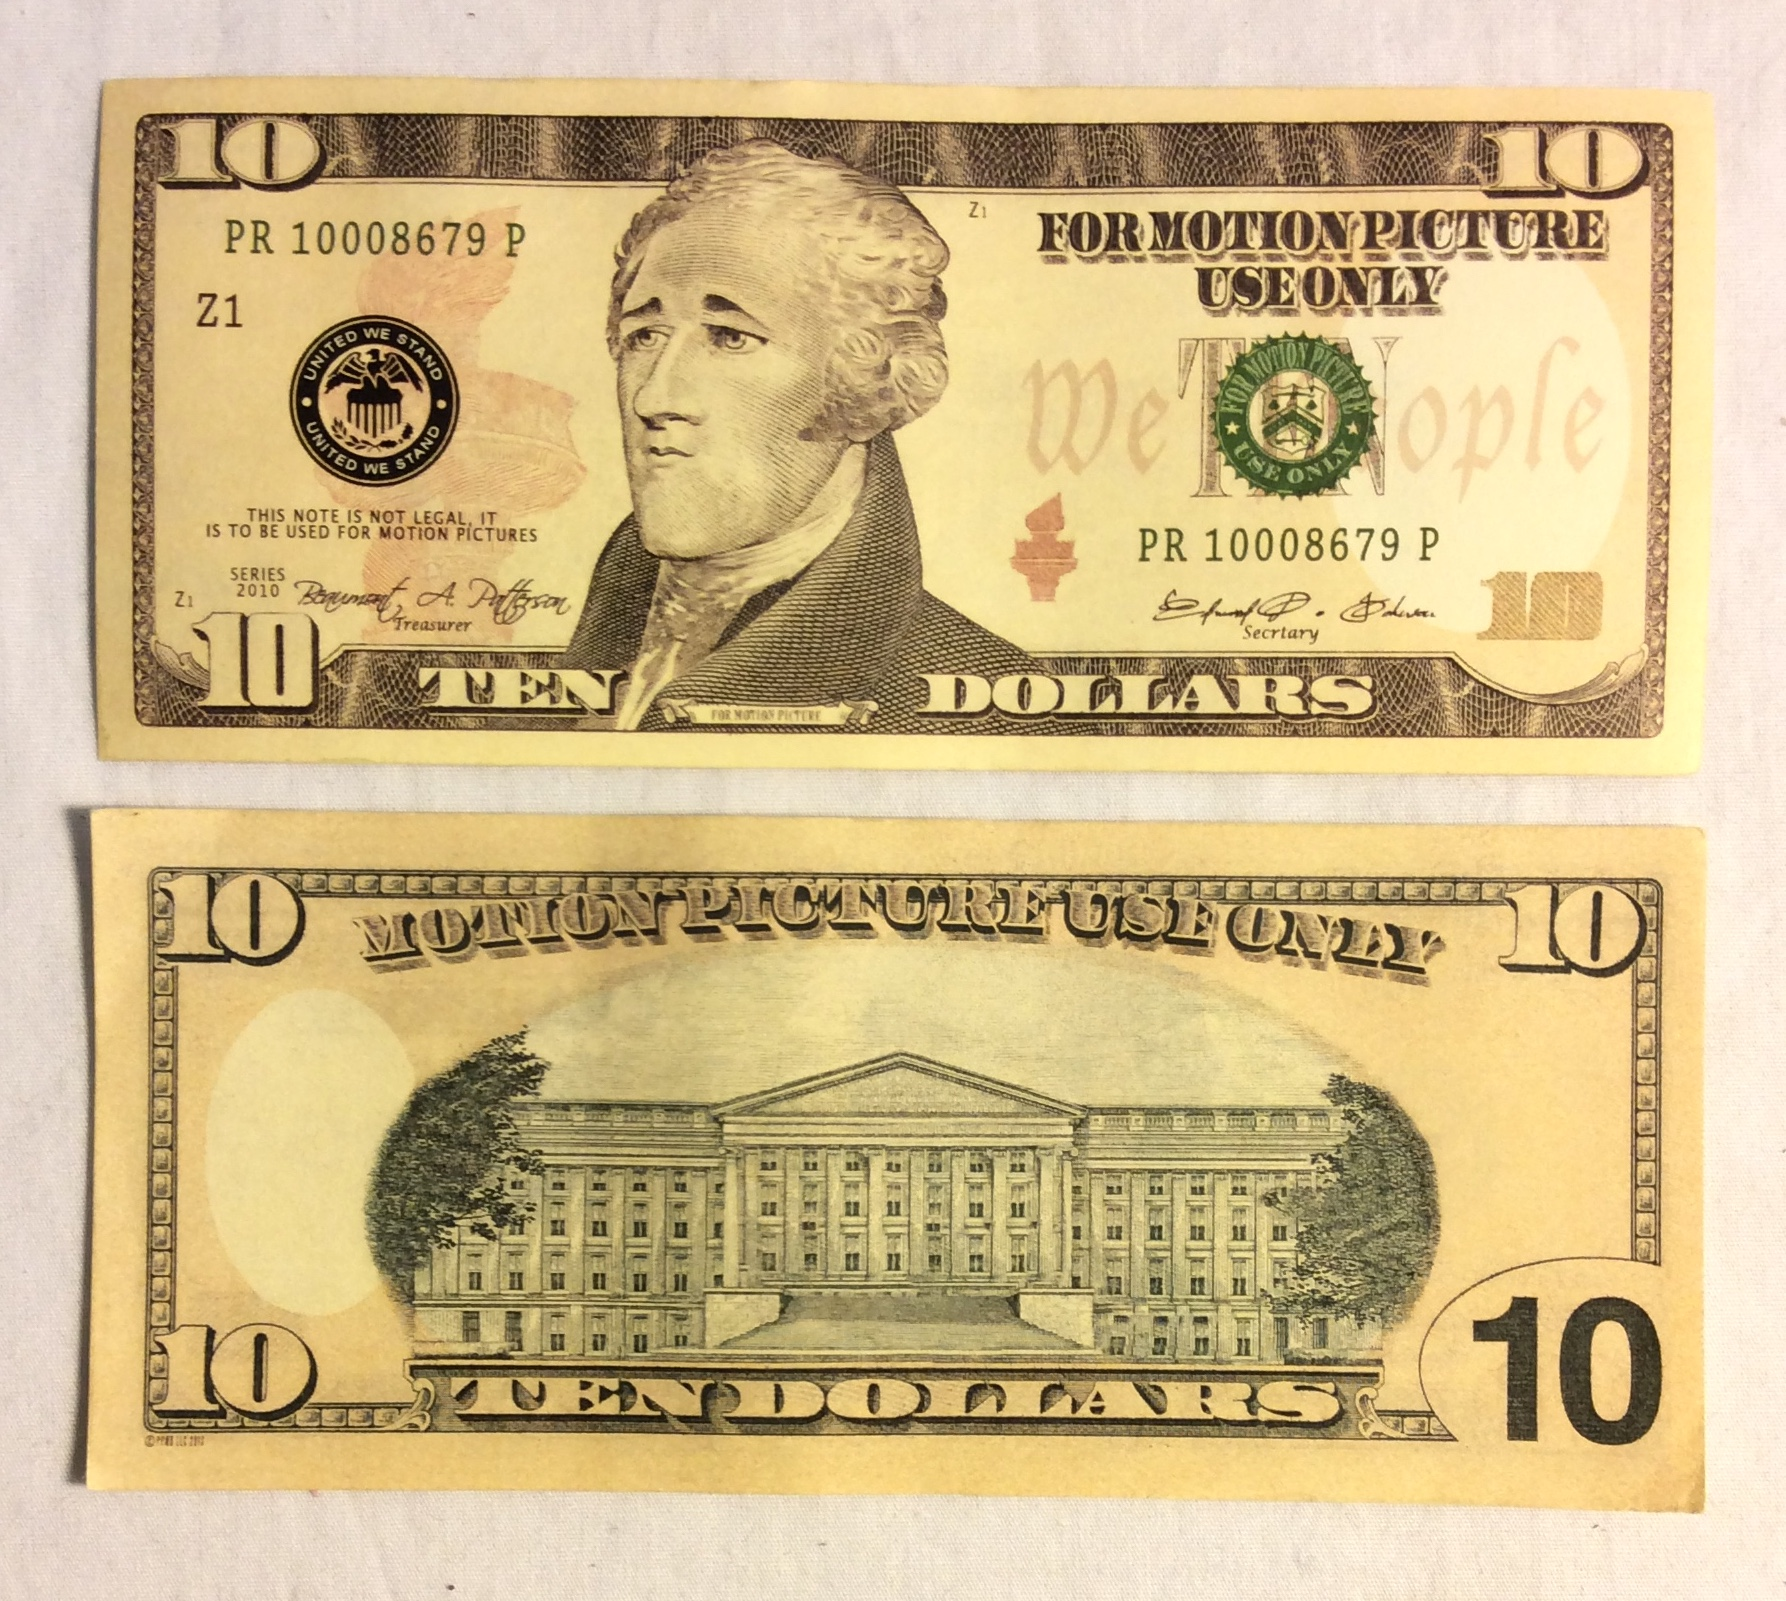 US $10 Bill, double-sided